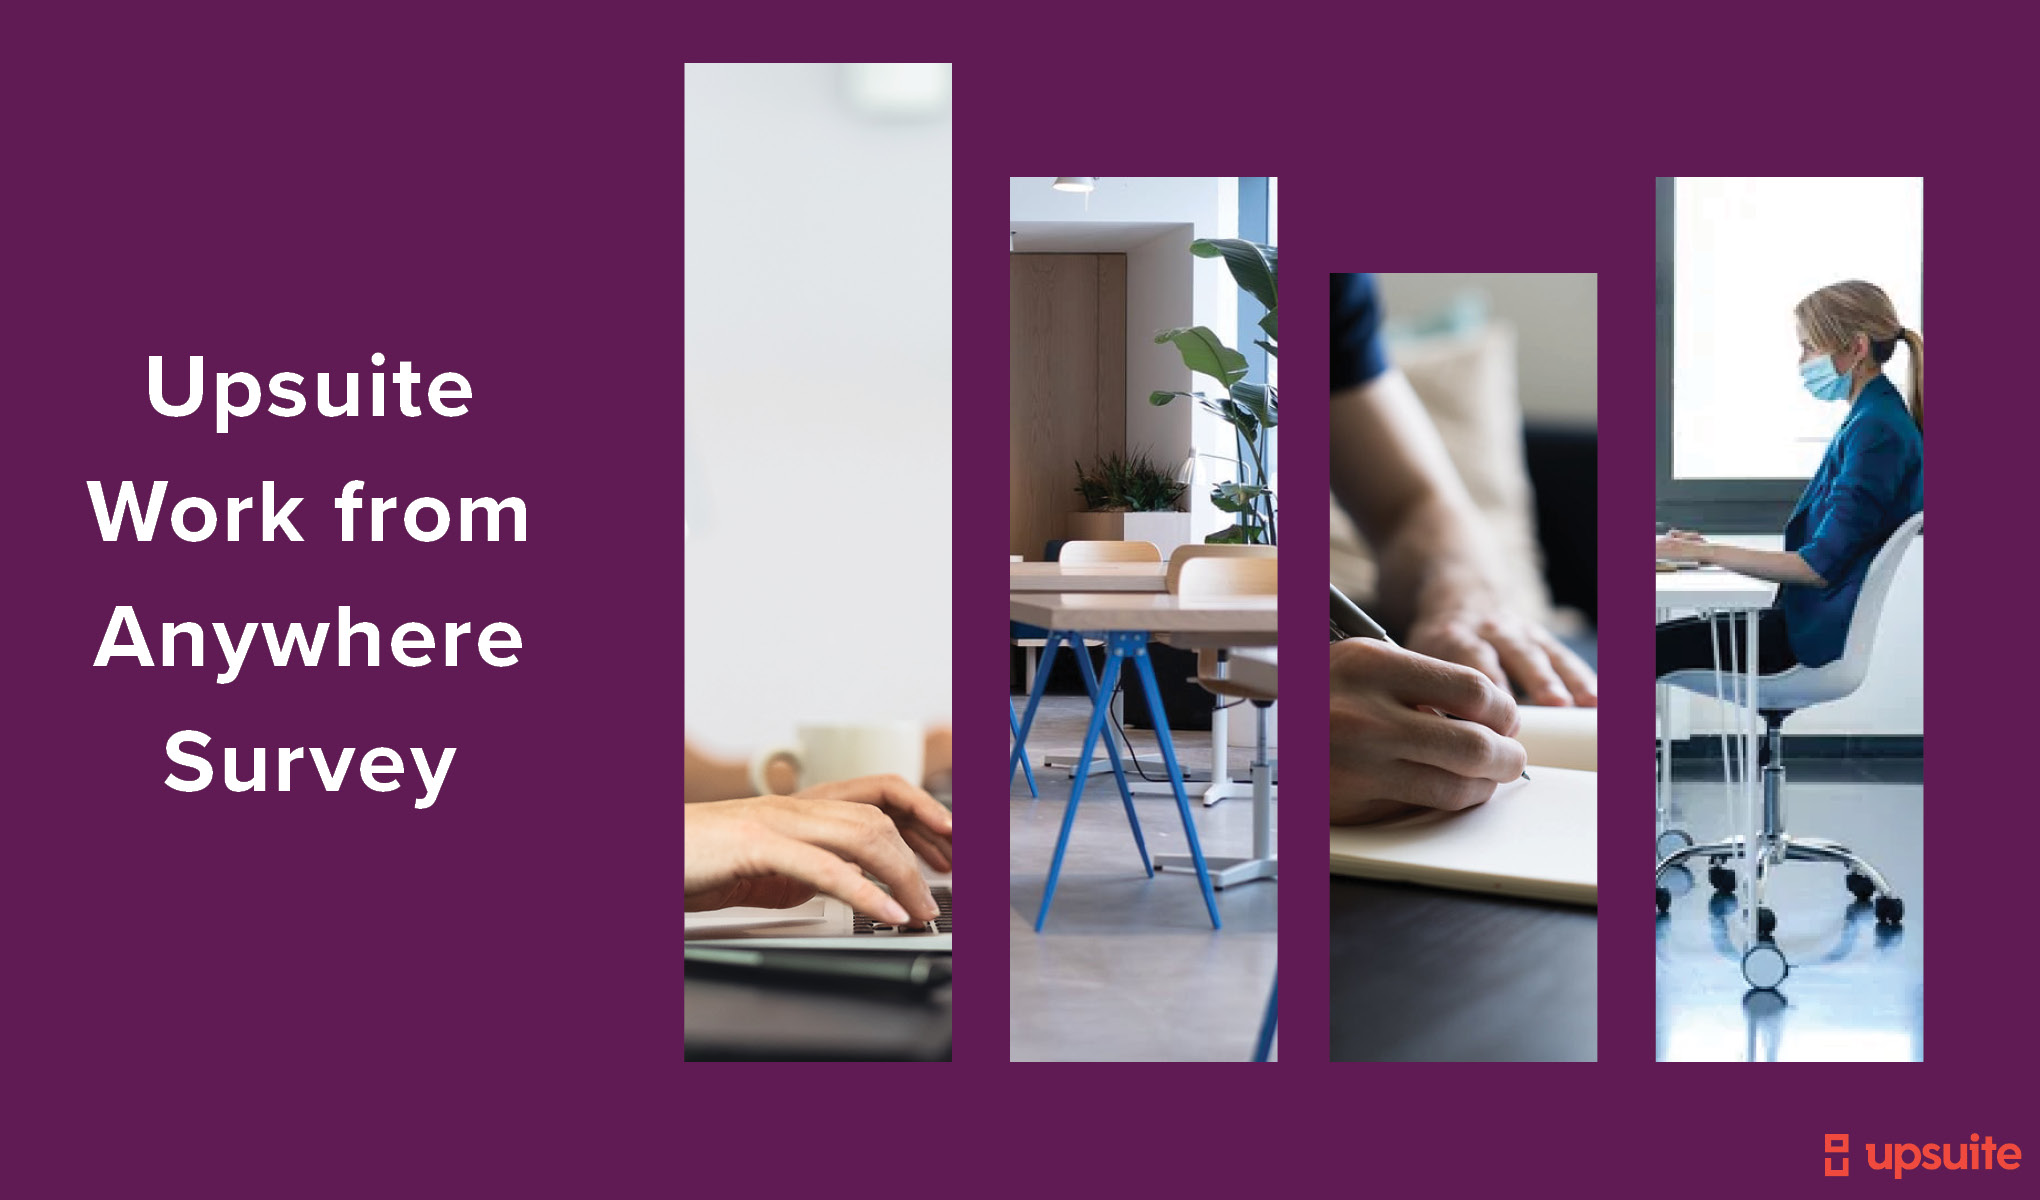 Upsuite Survey Results on Needs to Find Workspace